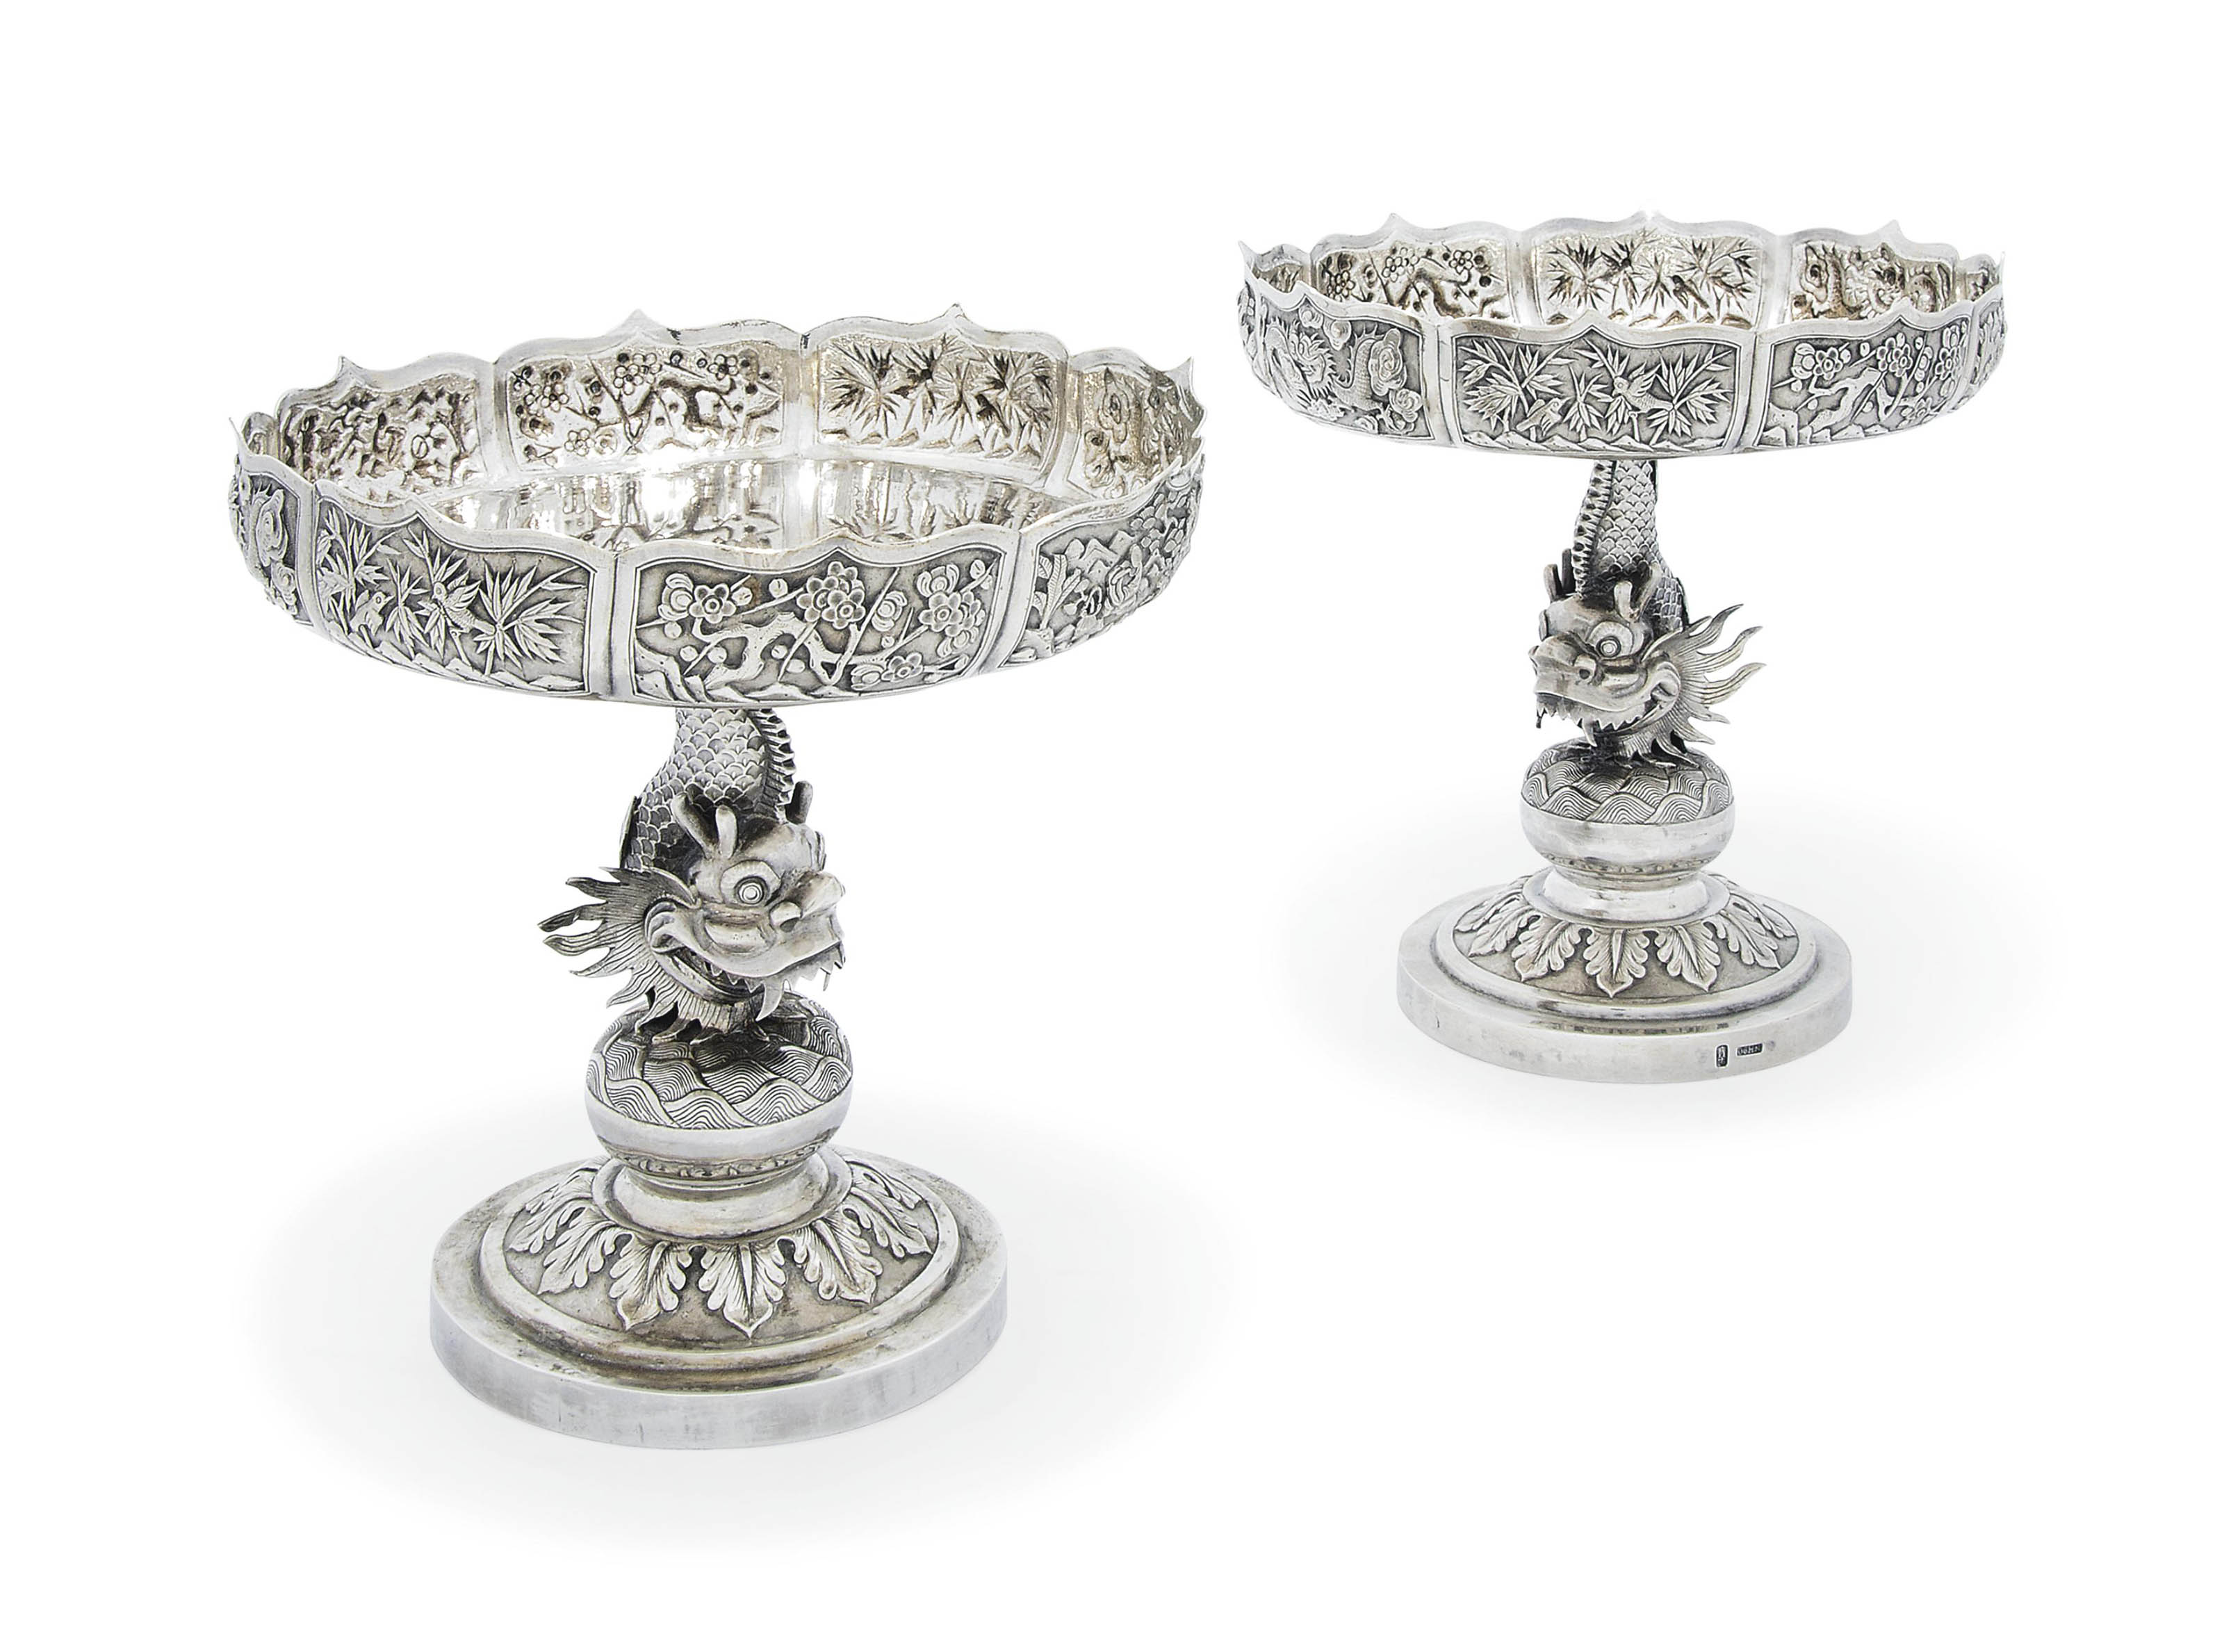 A PAIR OF CHINESE EXPORT SILVER TAZZE